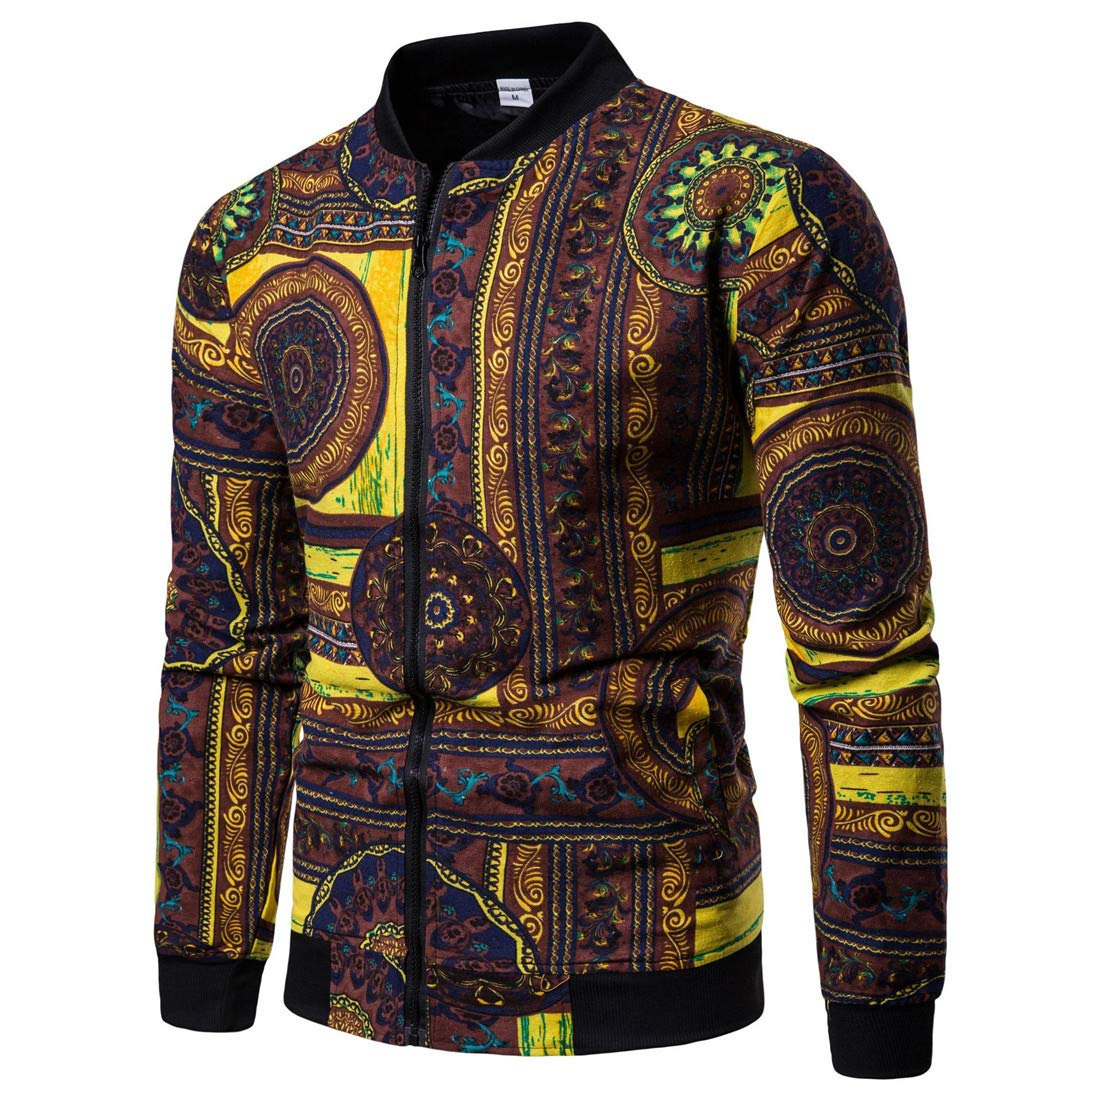 Ueioc Men Casual African Printed Zip-up Slim Fit Bomber Jacket